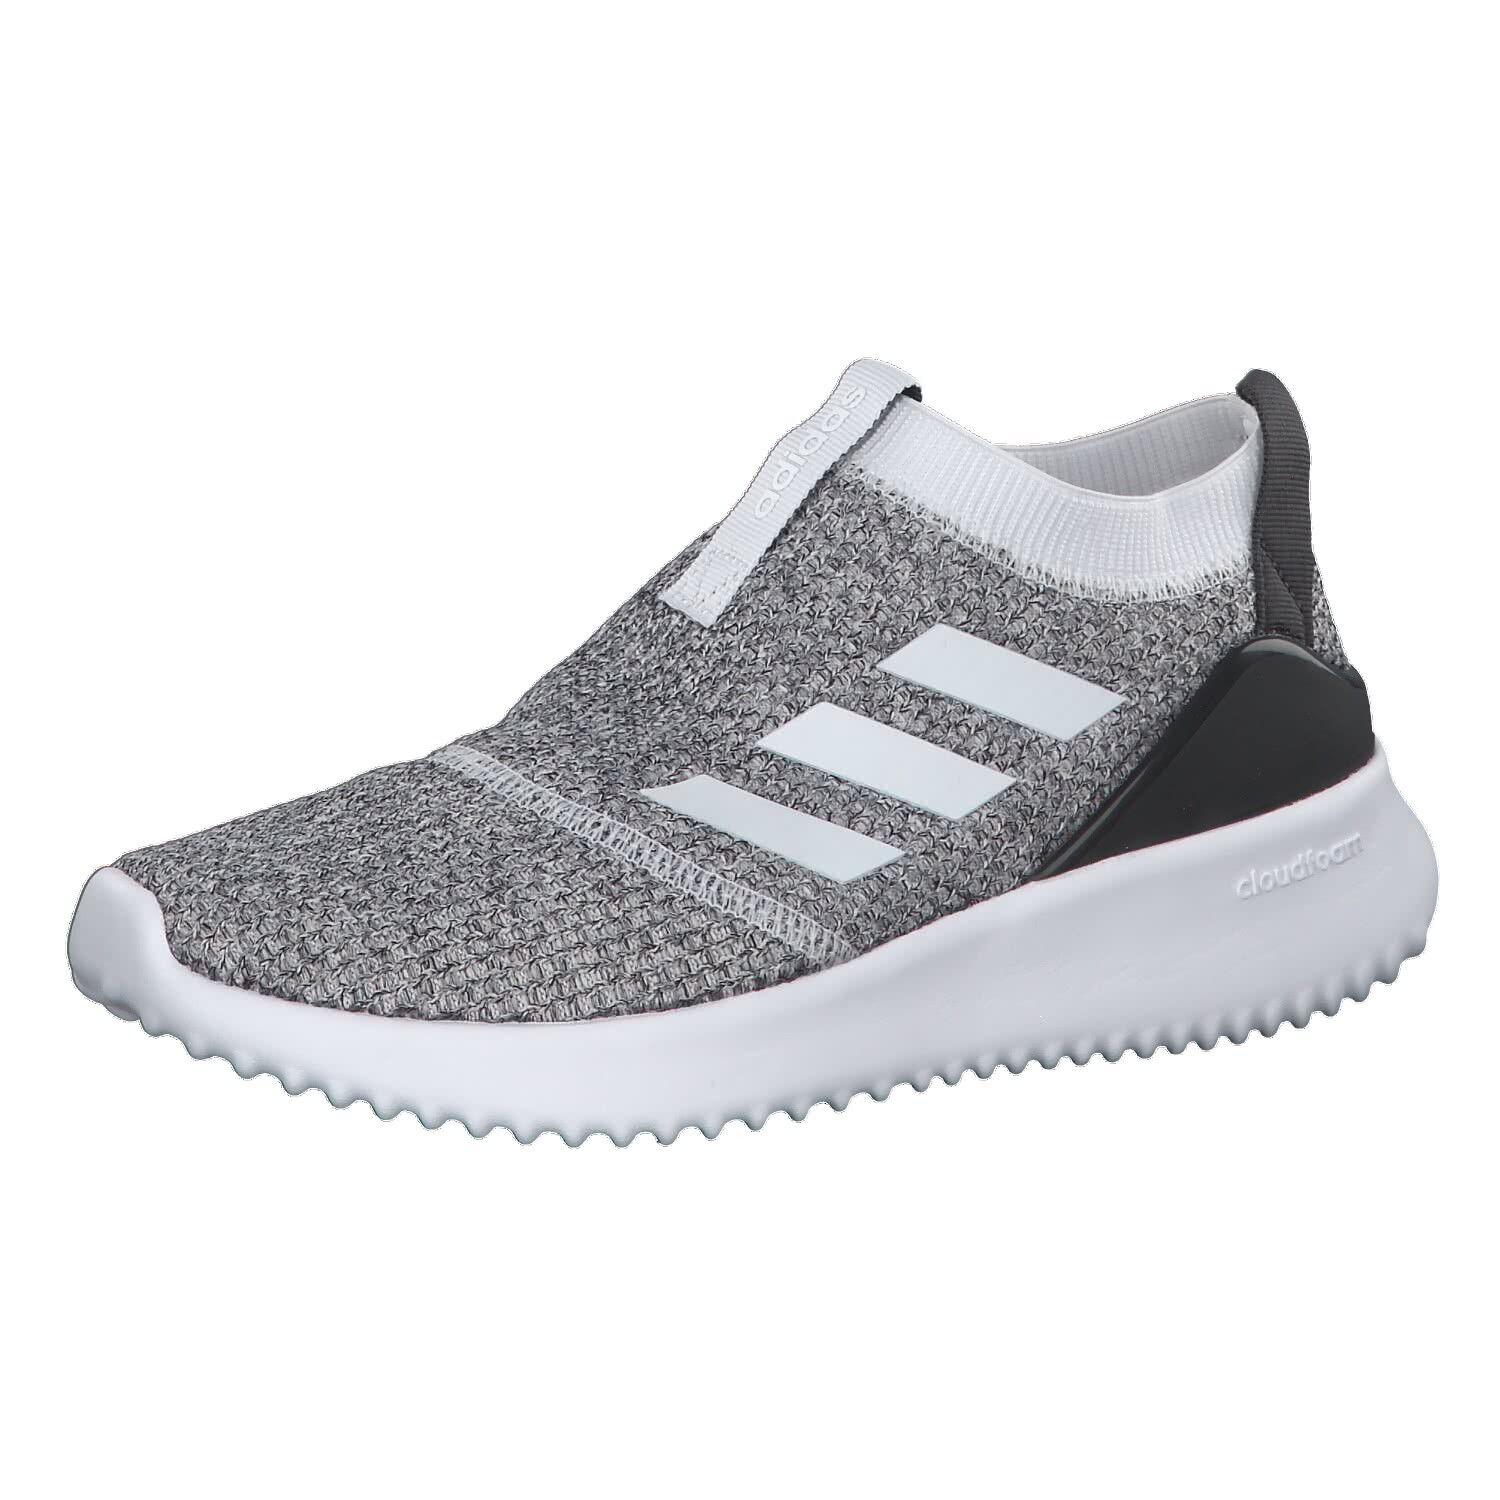 Adidas Core Turnchaussures femmes Ultima Fusion